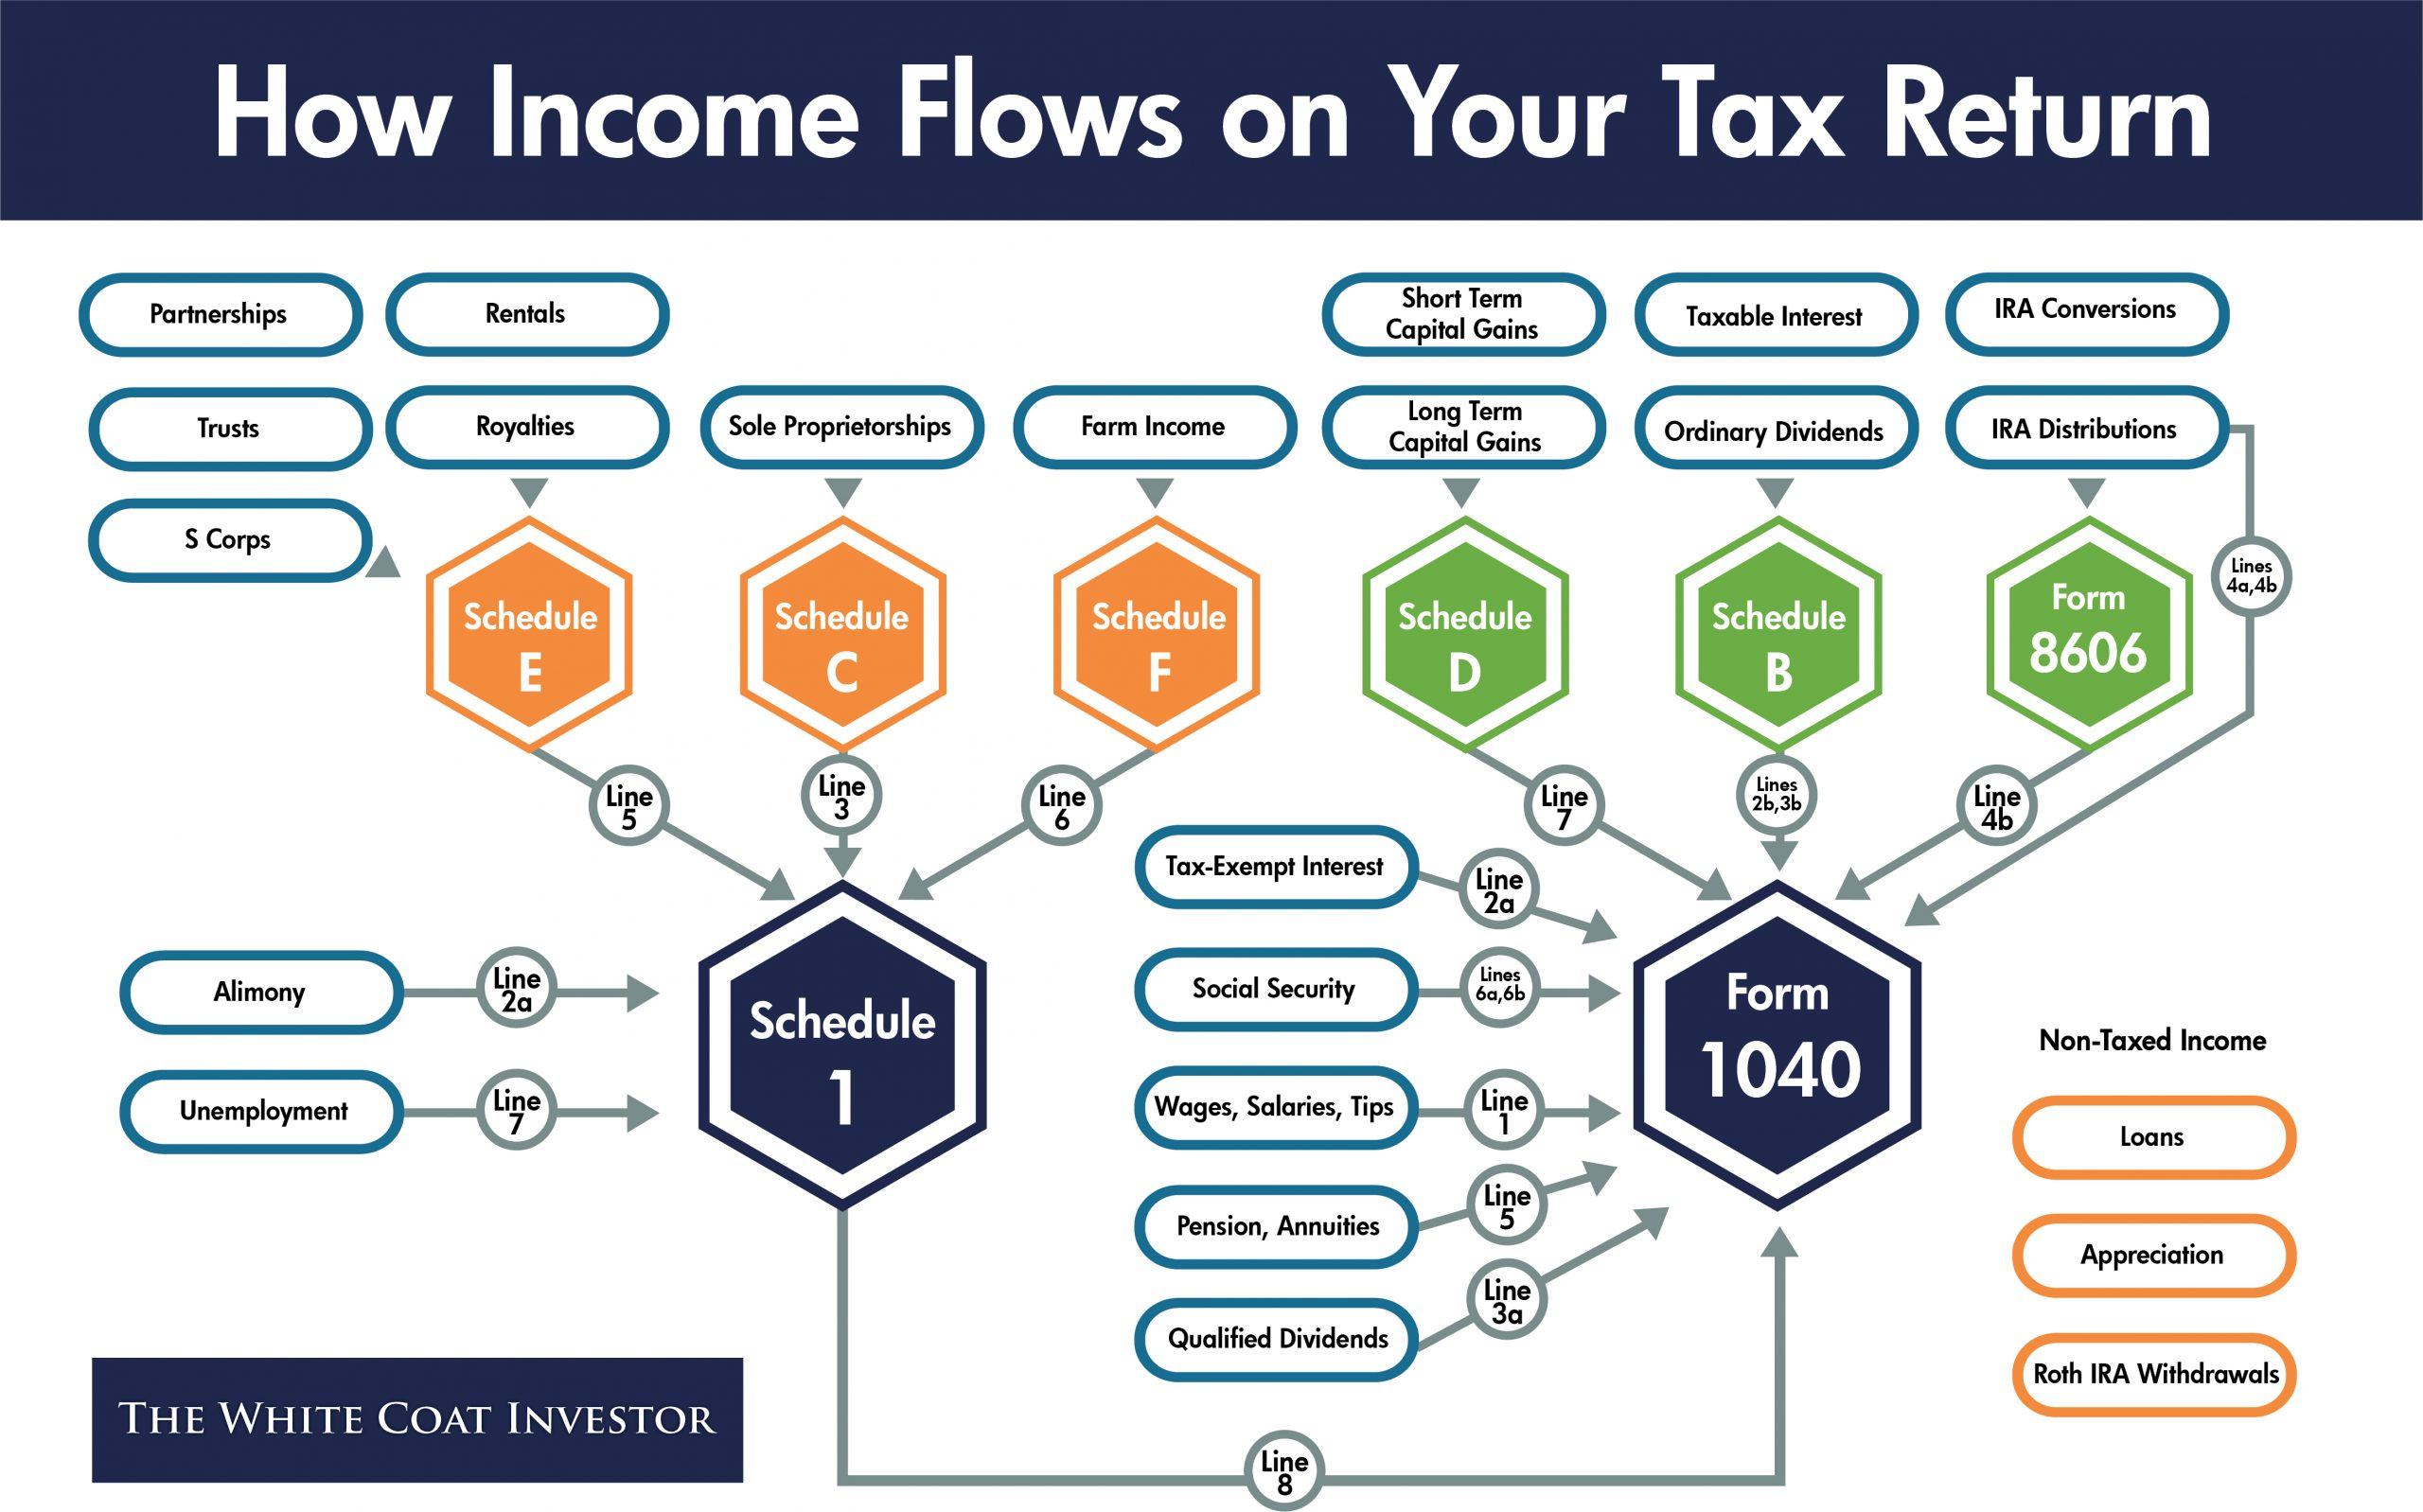 how income flows on tax return